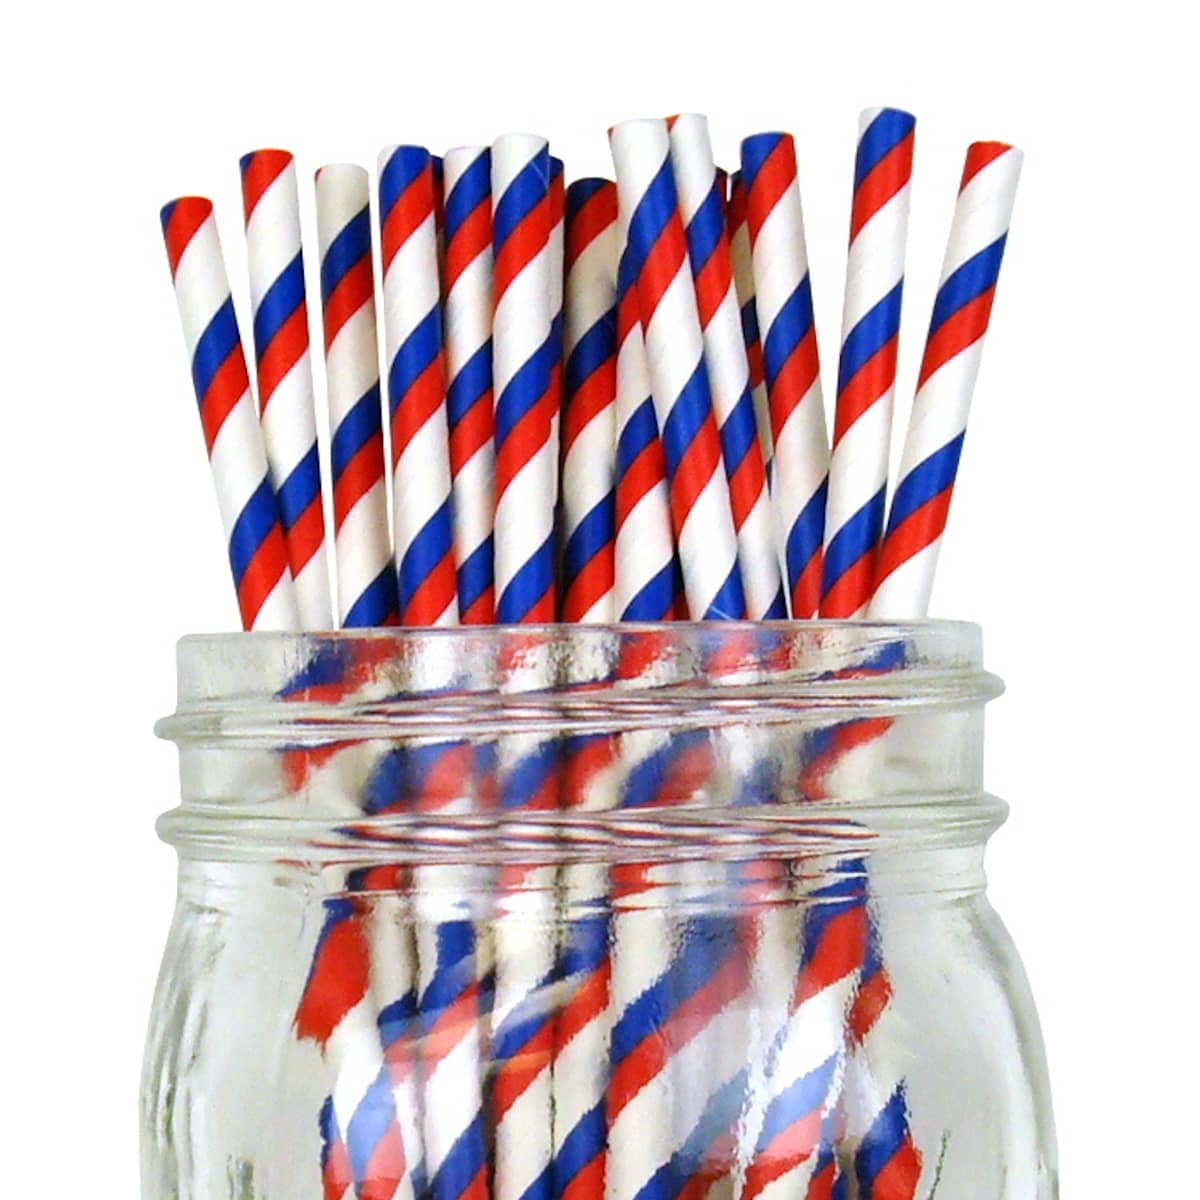 10 Festive 4th of July Decorations for $10 or Less: gallery image 7